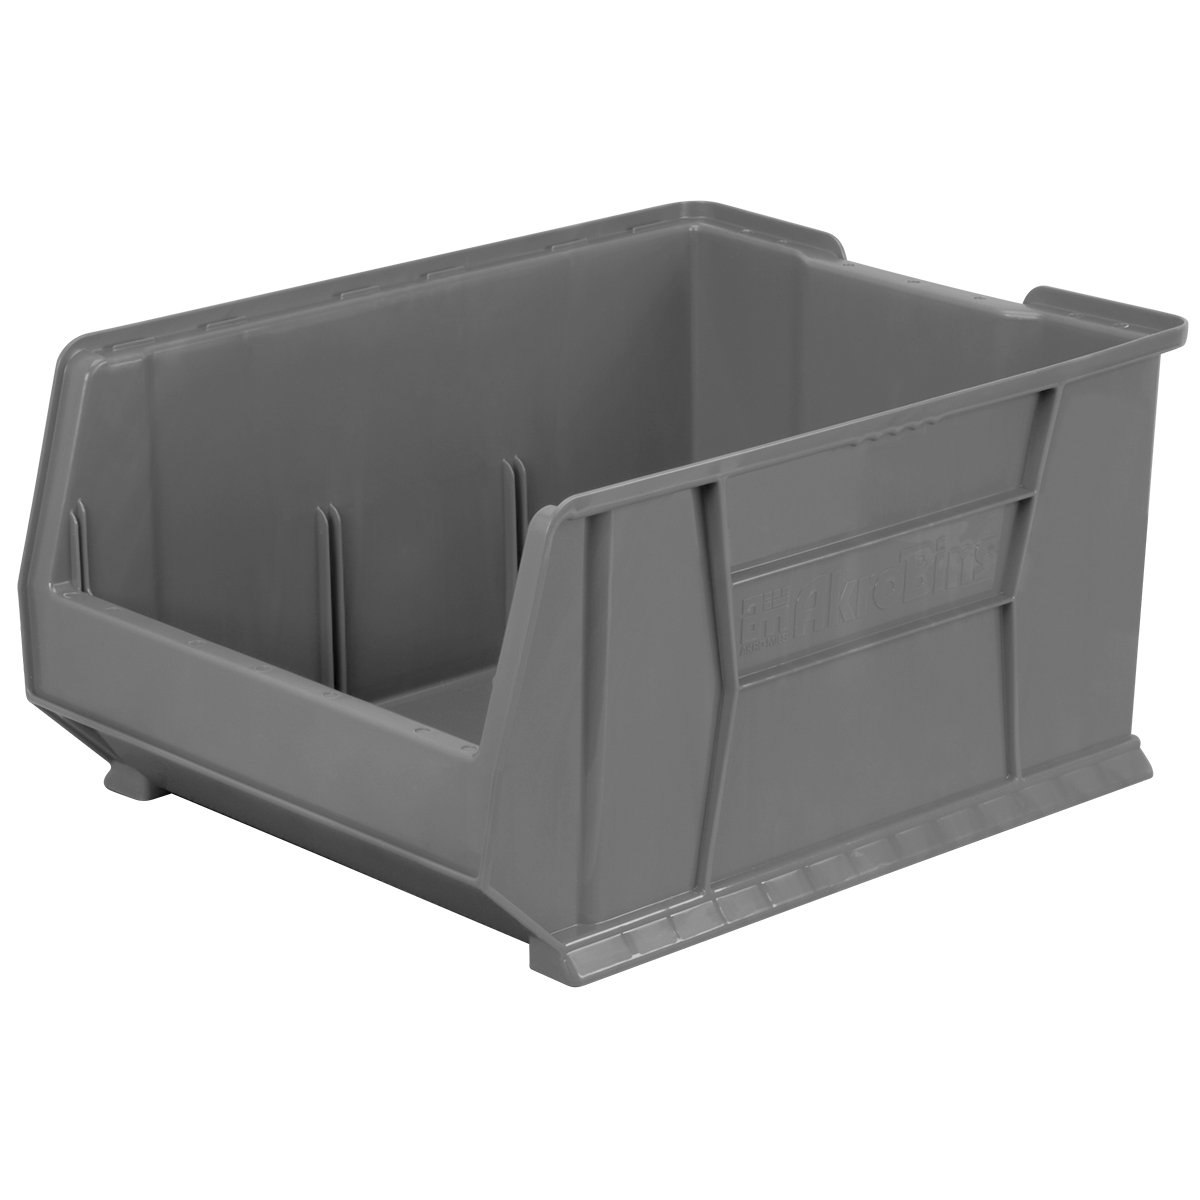 Akro-Mils 30289 Super-Size AkroBin Heavy Duty Stackable Storage Bin Plastic Container, (24-Inch L x 18-Inch W x 12-Inch H), Gray, (1-Pack)